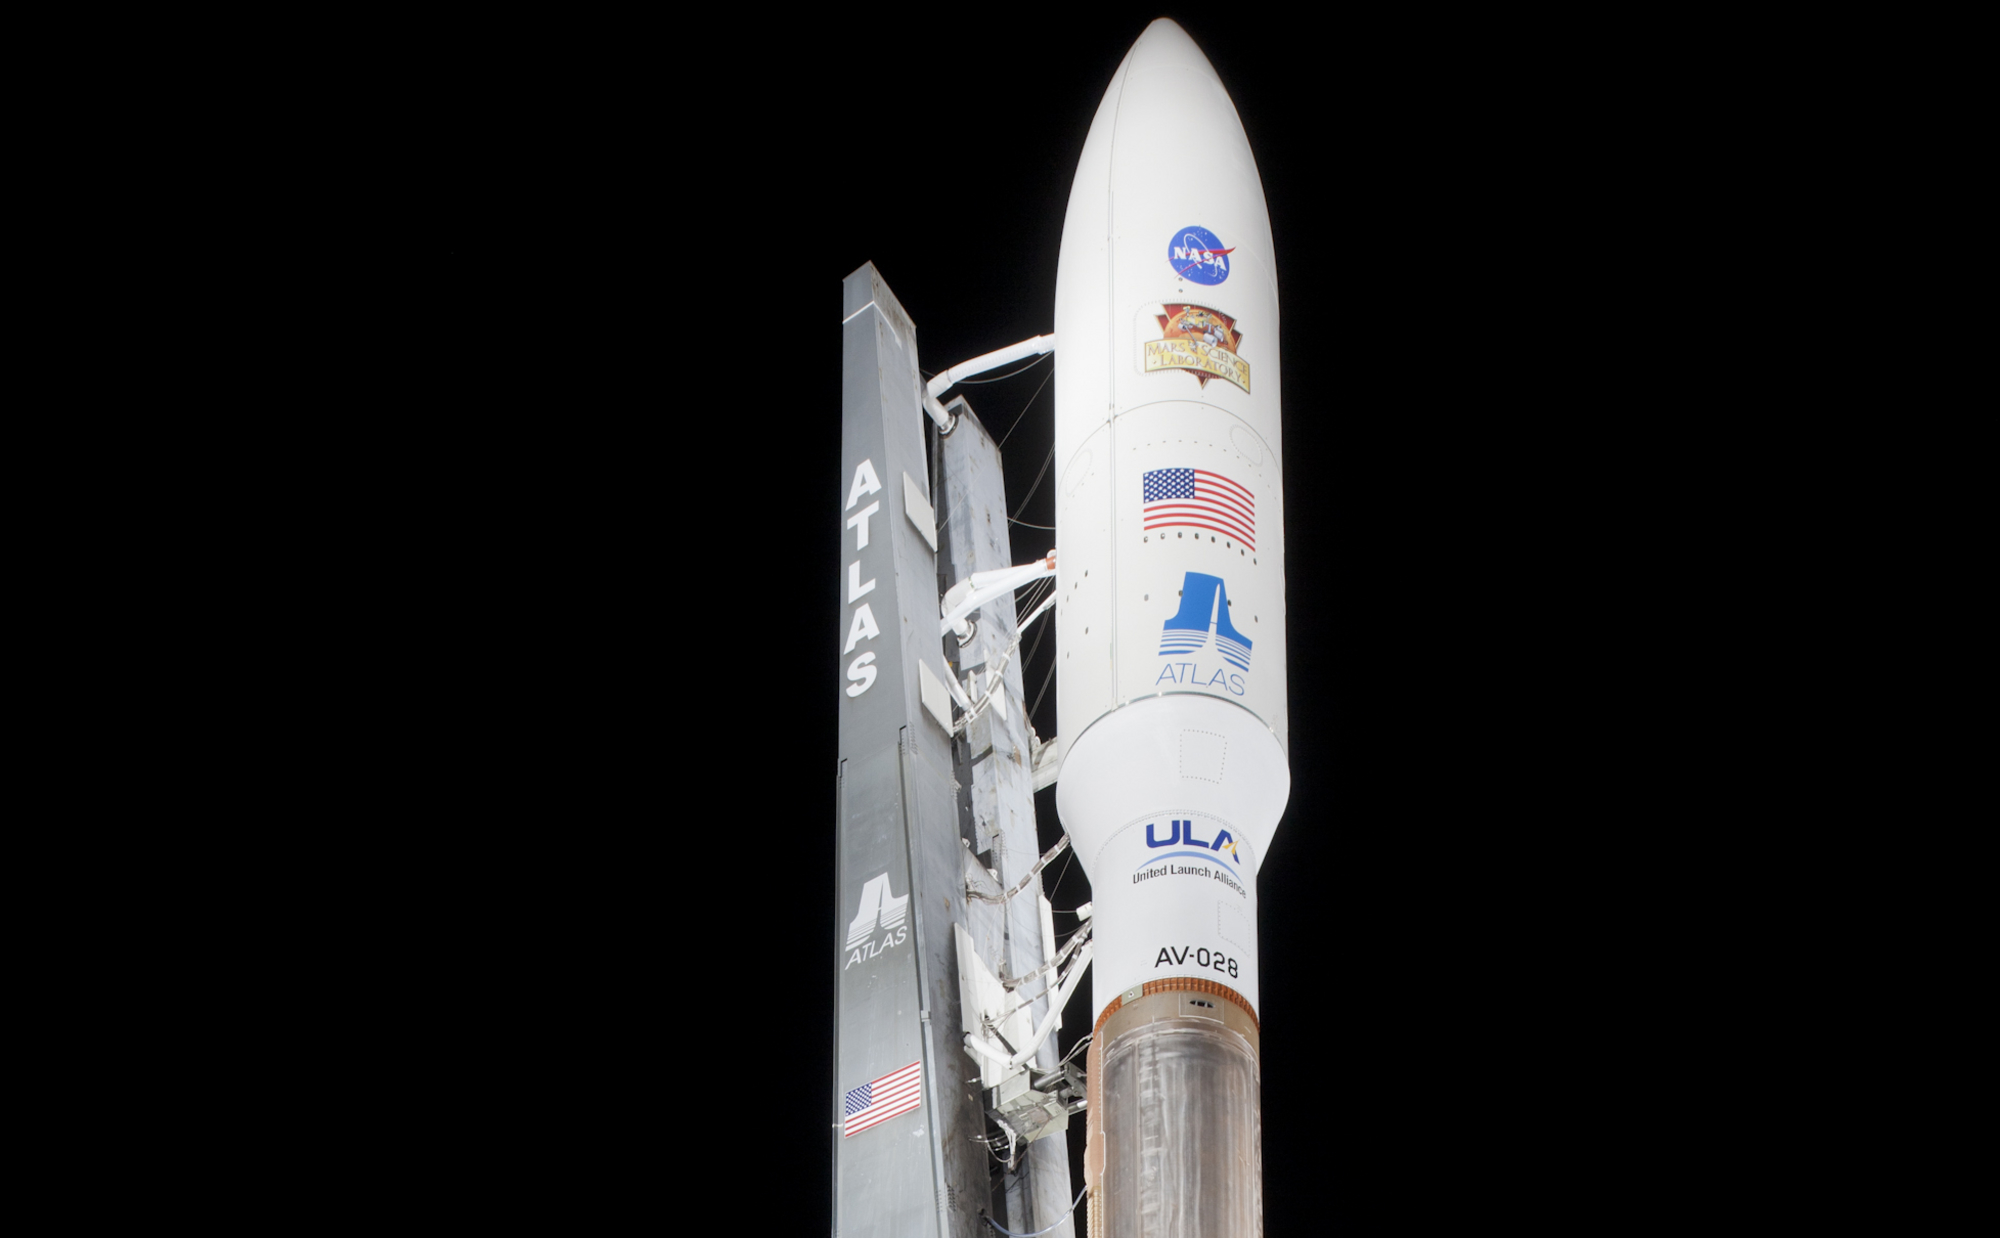 With NASA's Mars Science Laboratory (MSL) spacecraft sealed inside its payload fairing, the United Launch Alliance Atlas V rocket stands ready for launch at Space Launch Complex-41 on Cape Canaveral Air Force Station in Florida.